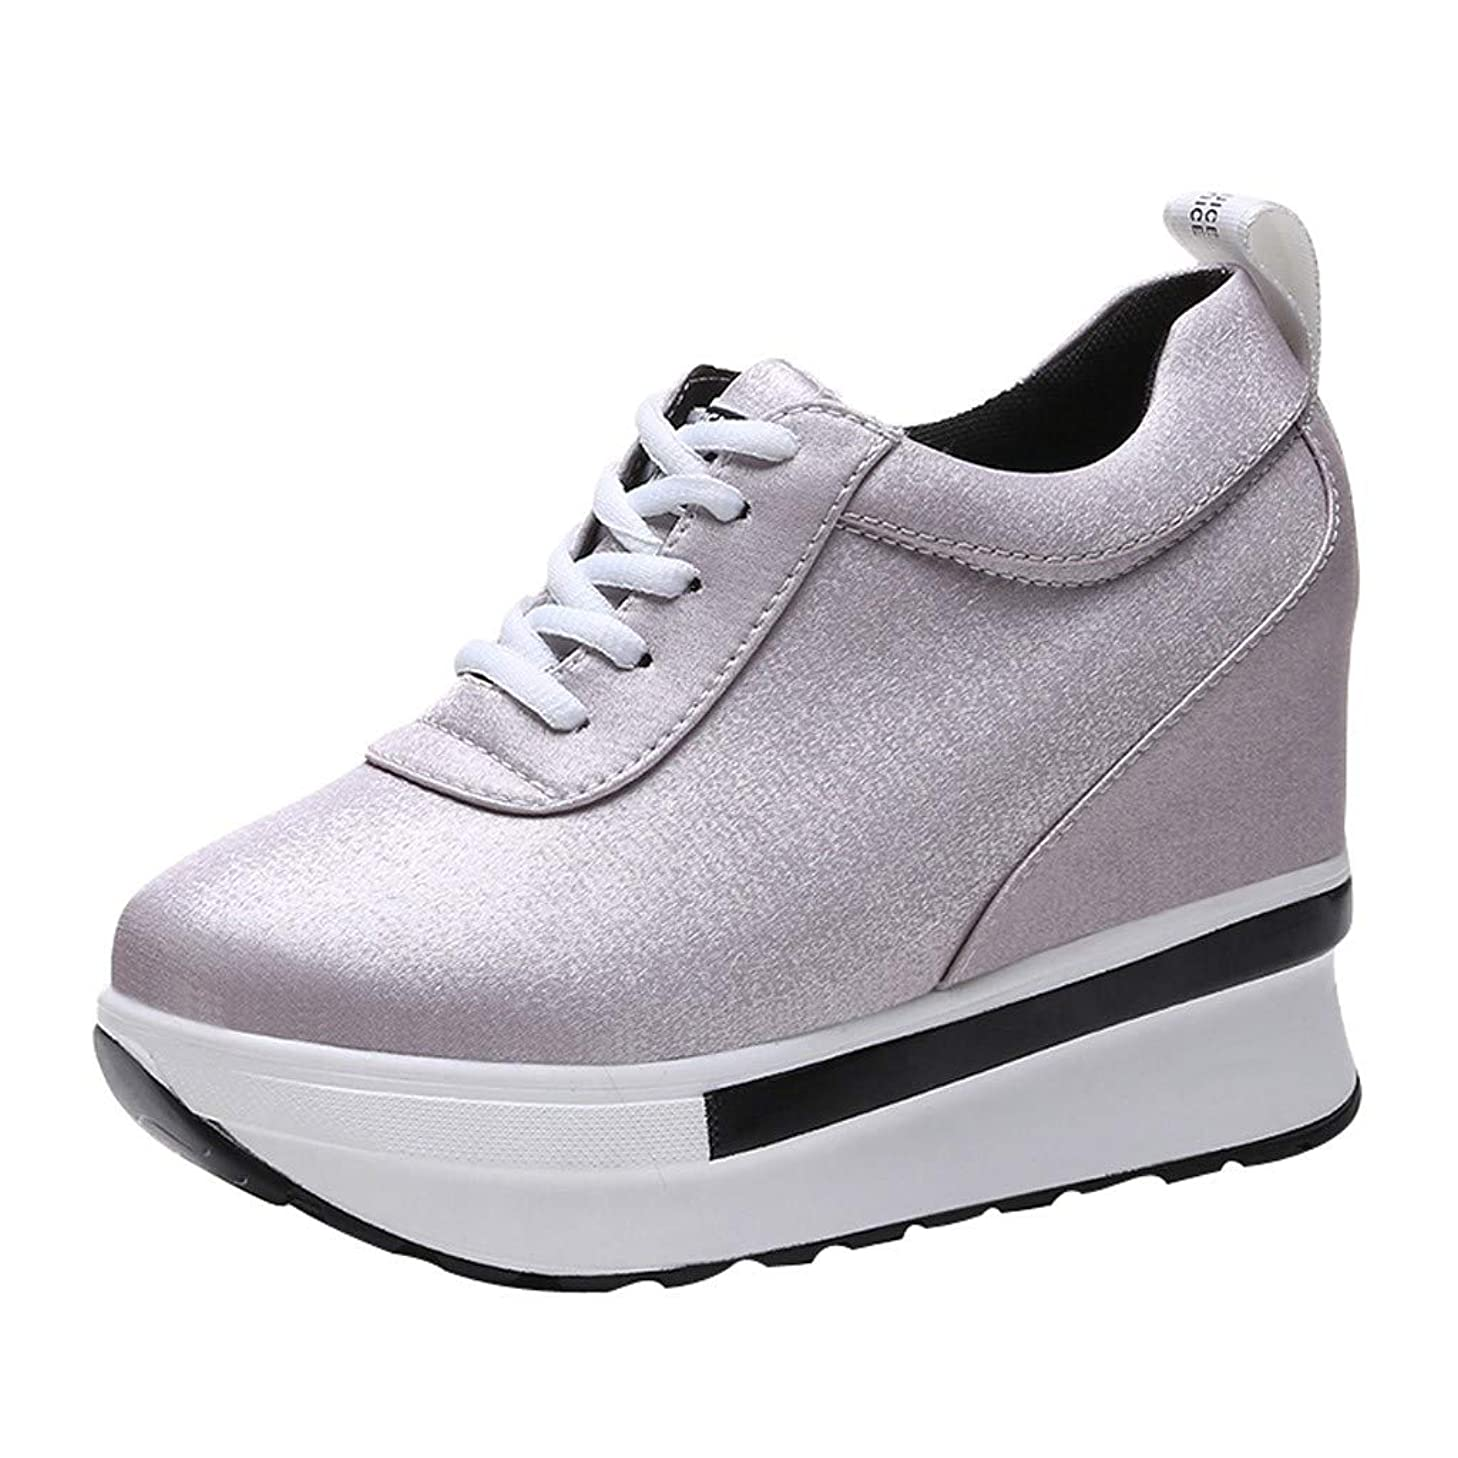 Kauneus Women Comfort Walking Shoes Casual Tennis Lightweight Sneakers Wedges Air Cushion Slip On Fitness Shoes